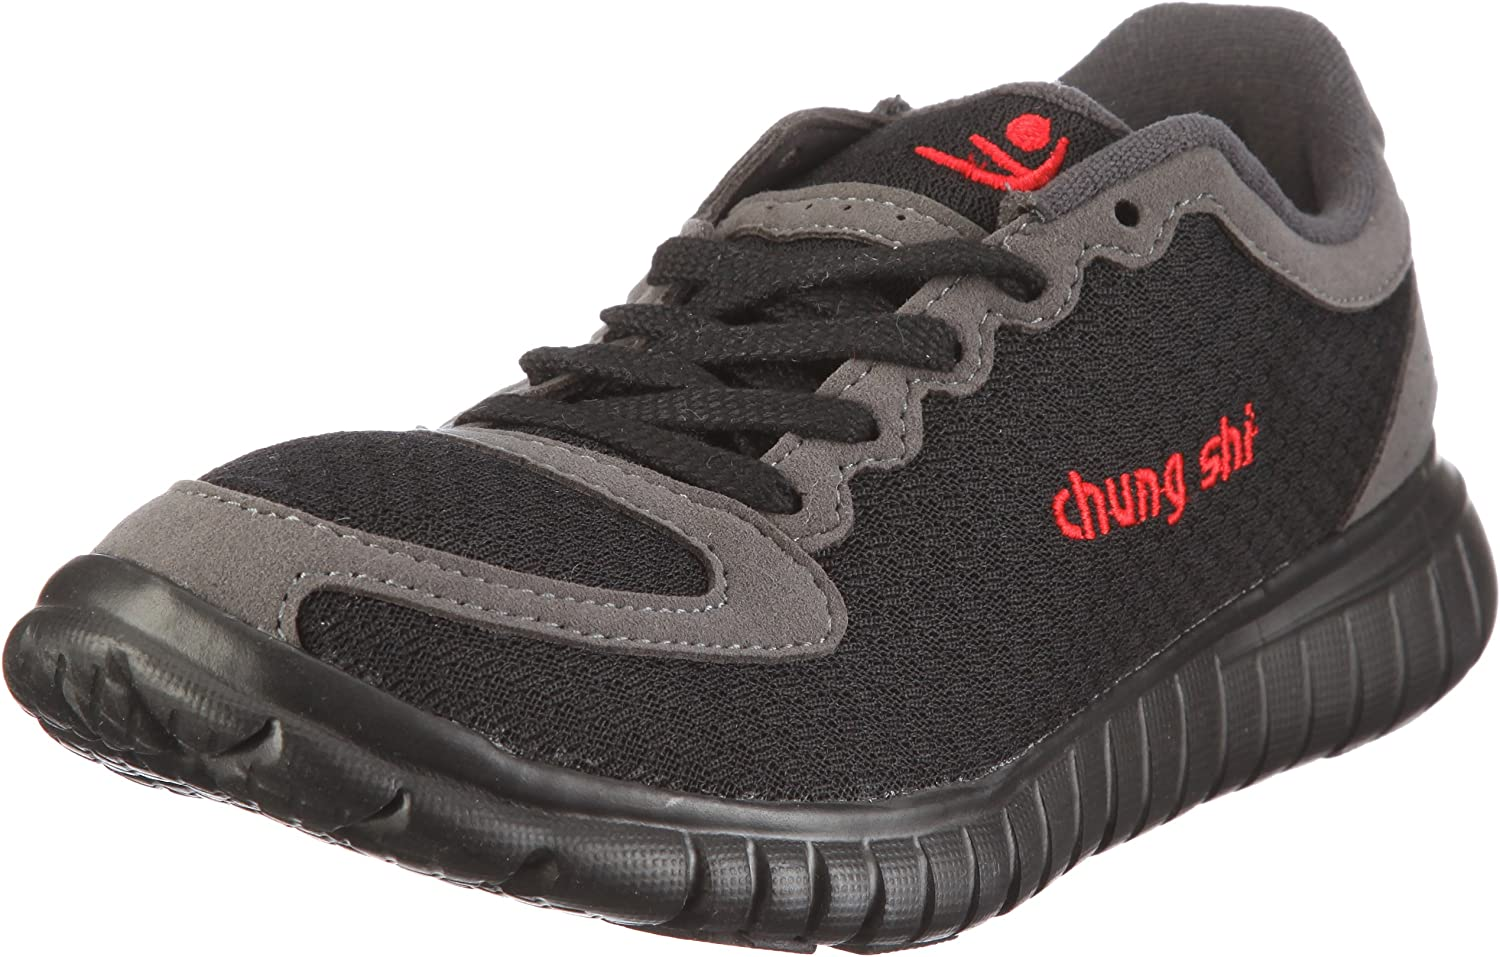 Chung -Shi Dux Trainer Sydney Trainers Unisex - Adults